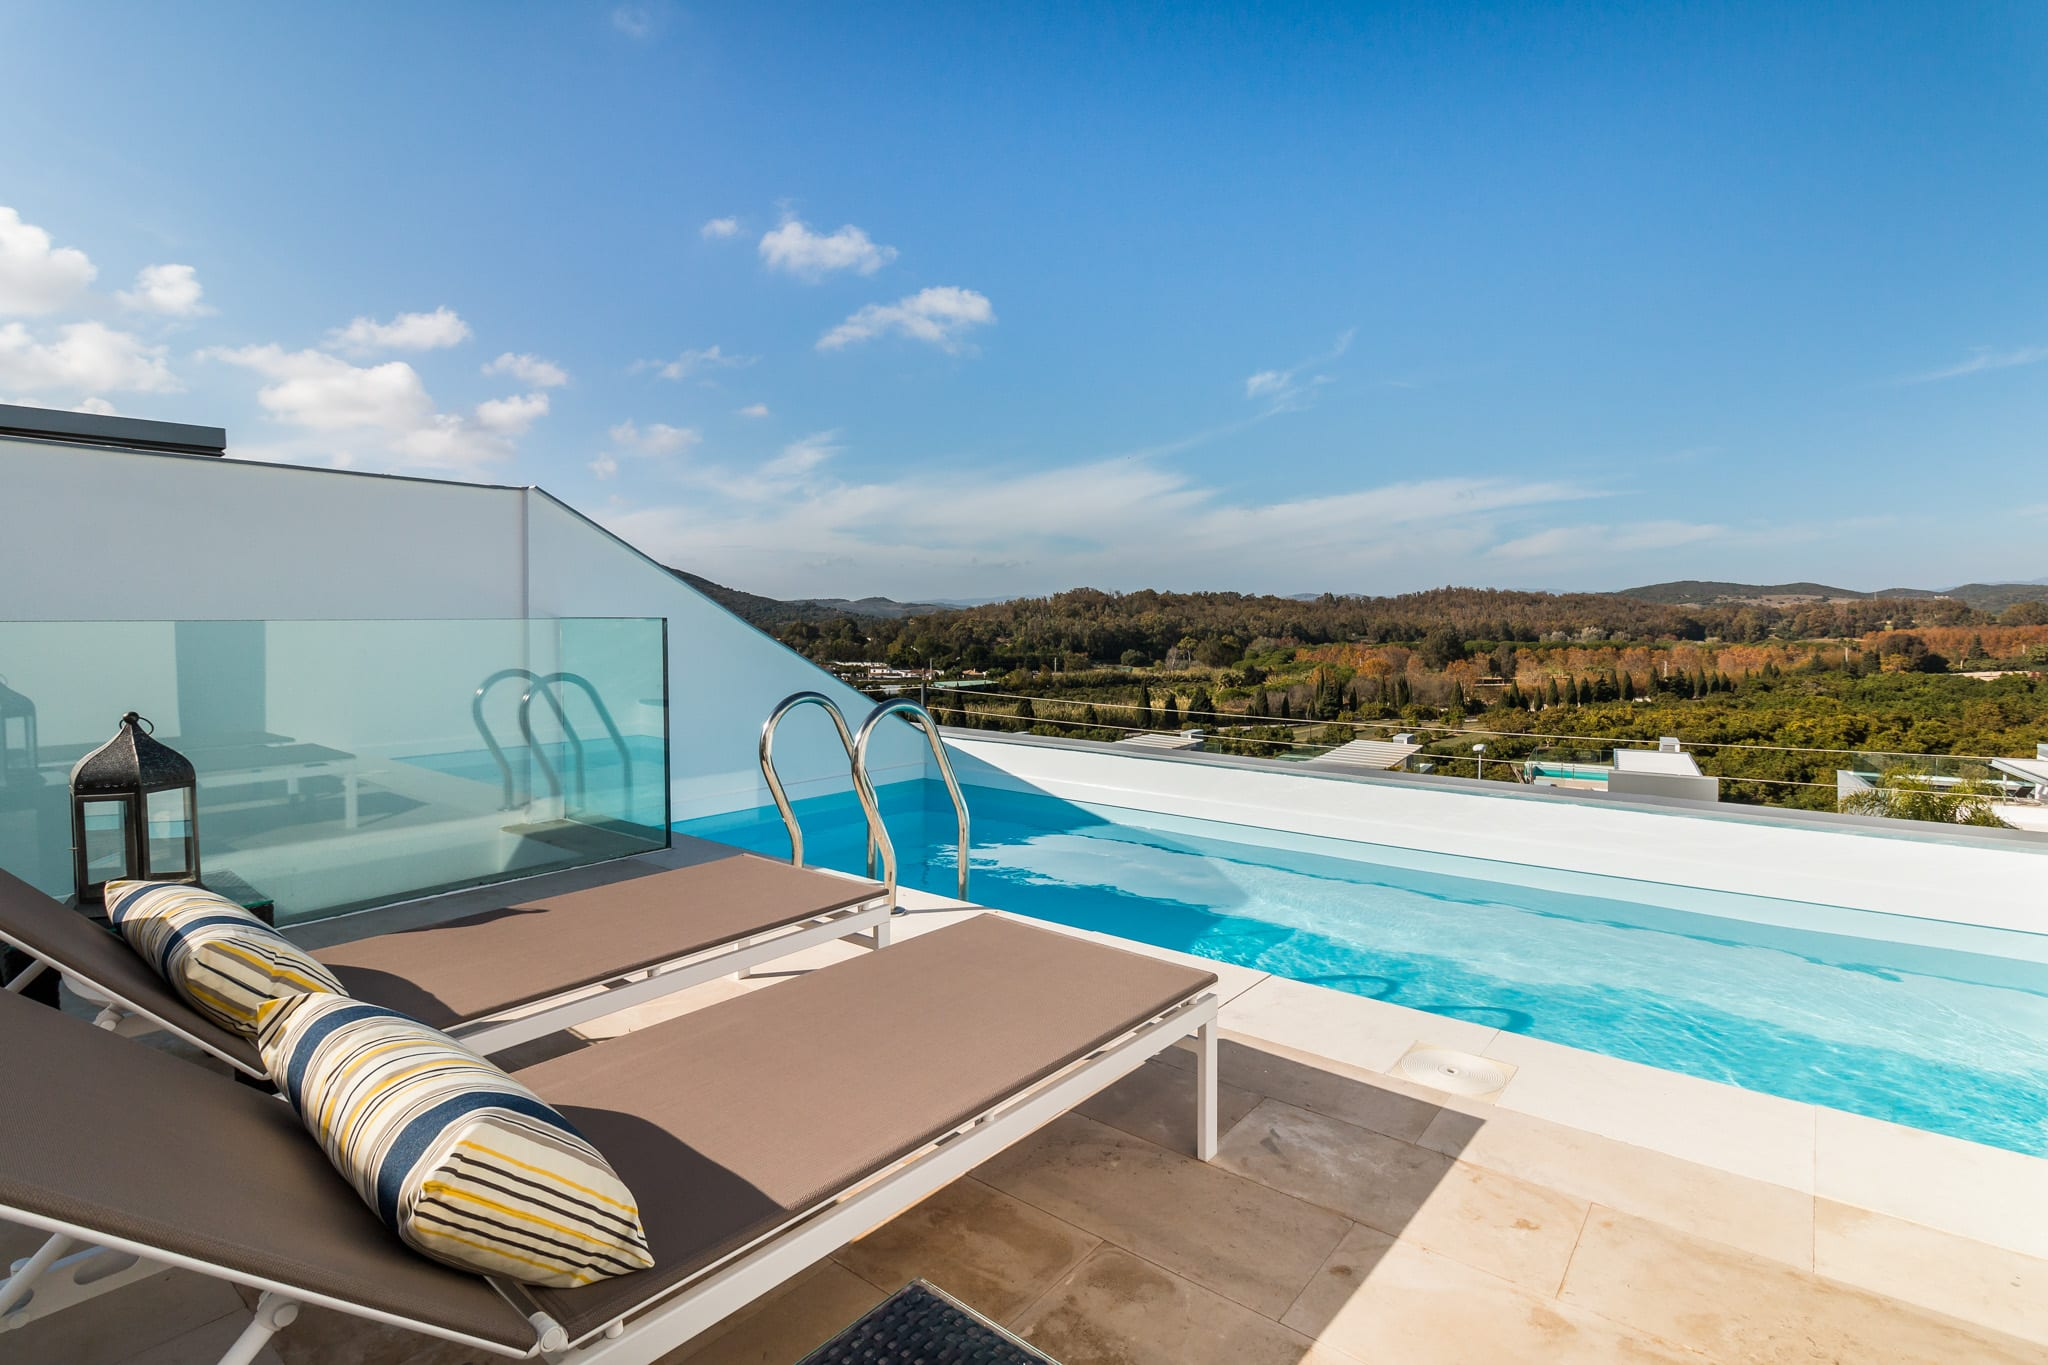 Beautifully decorated contemporary townhouse with pool for rent 5 minutes drive from Sotogrande